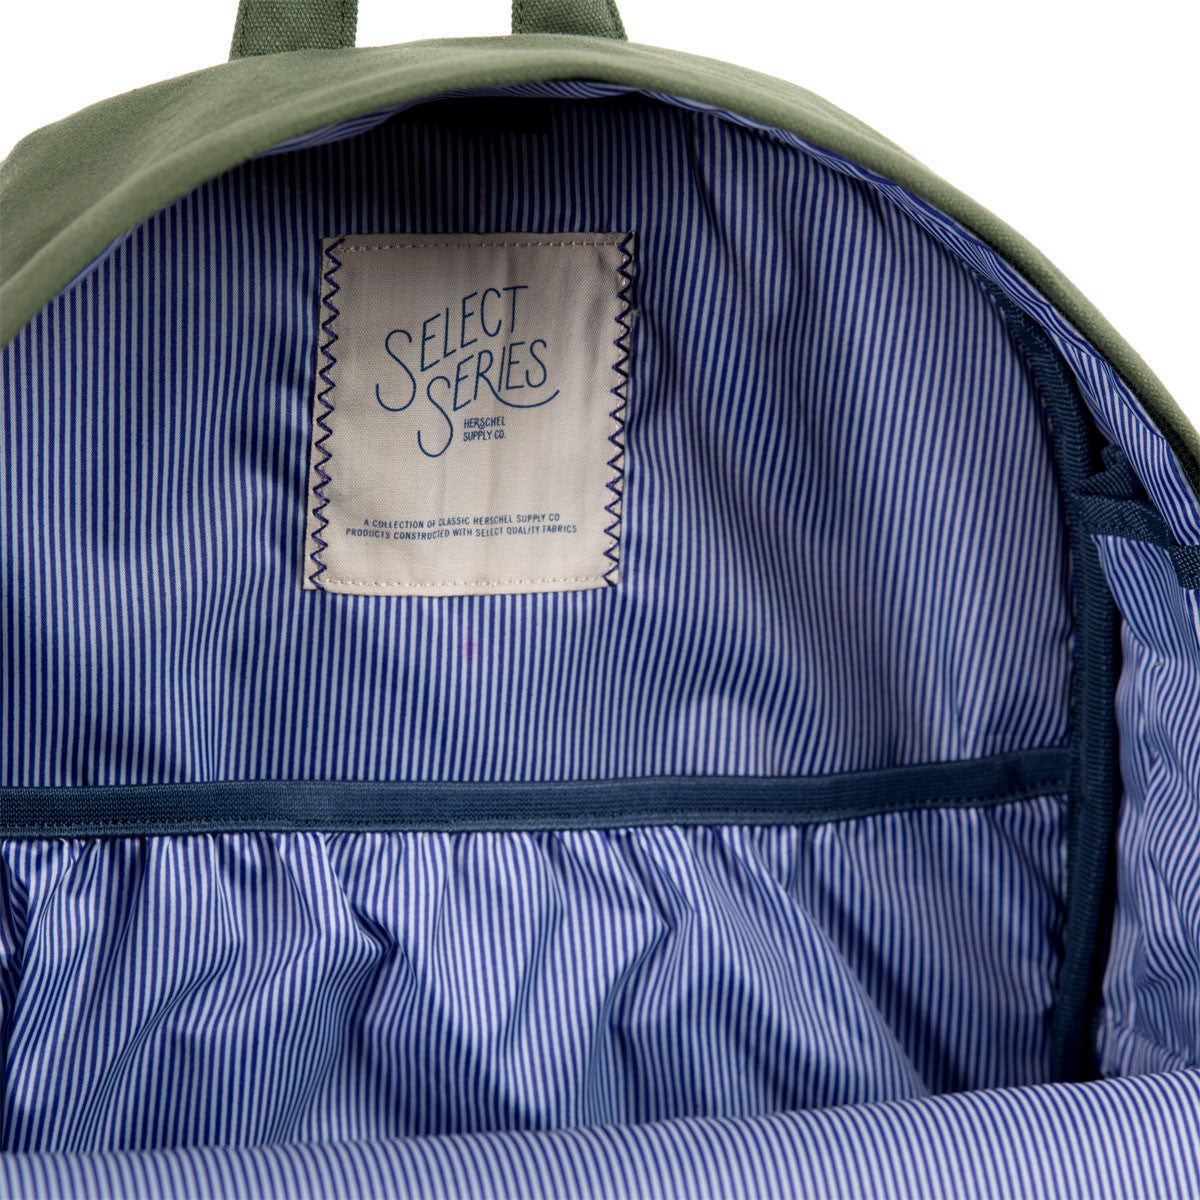 Herschel Supply Co.: Heritage Backpack - Army Coated Cotton Canvas / Indigo Denim (Select Series) detail 6